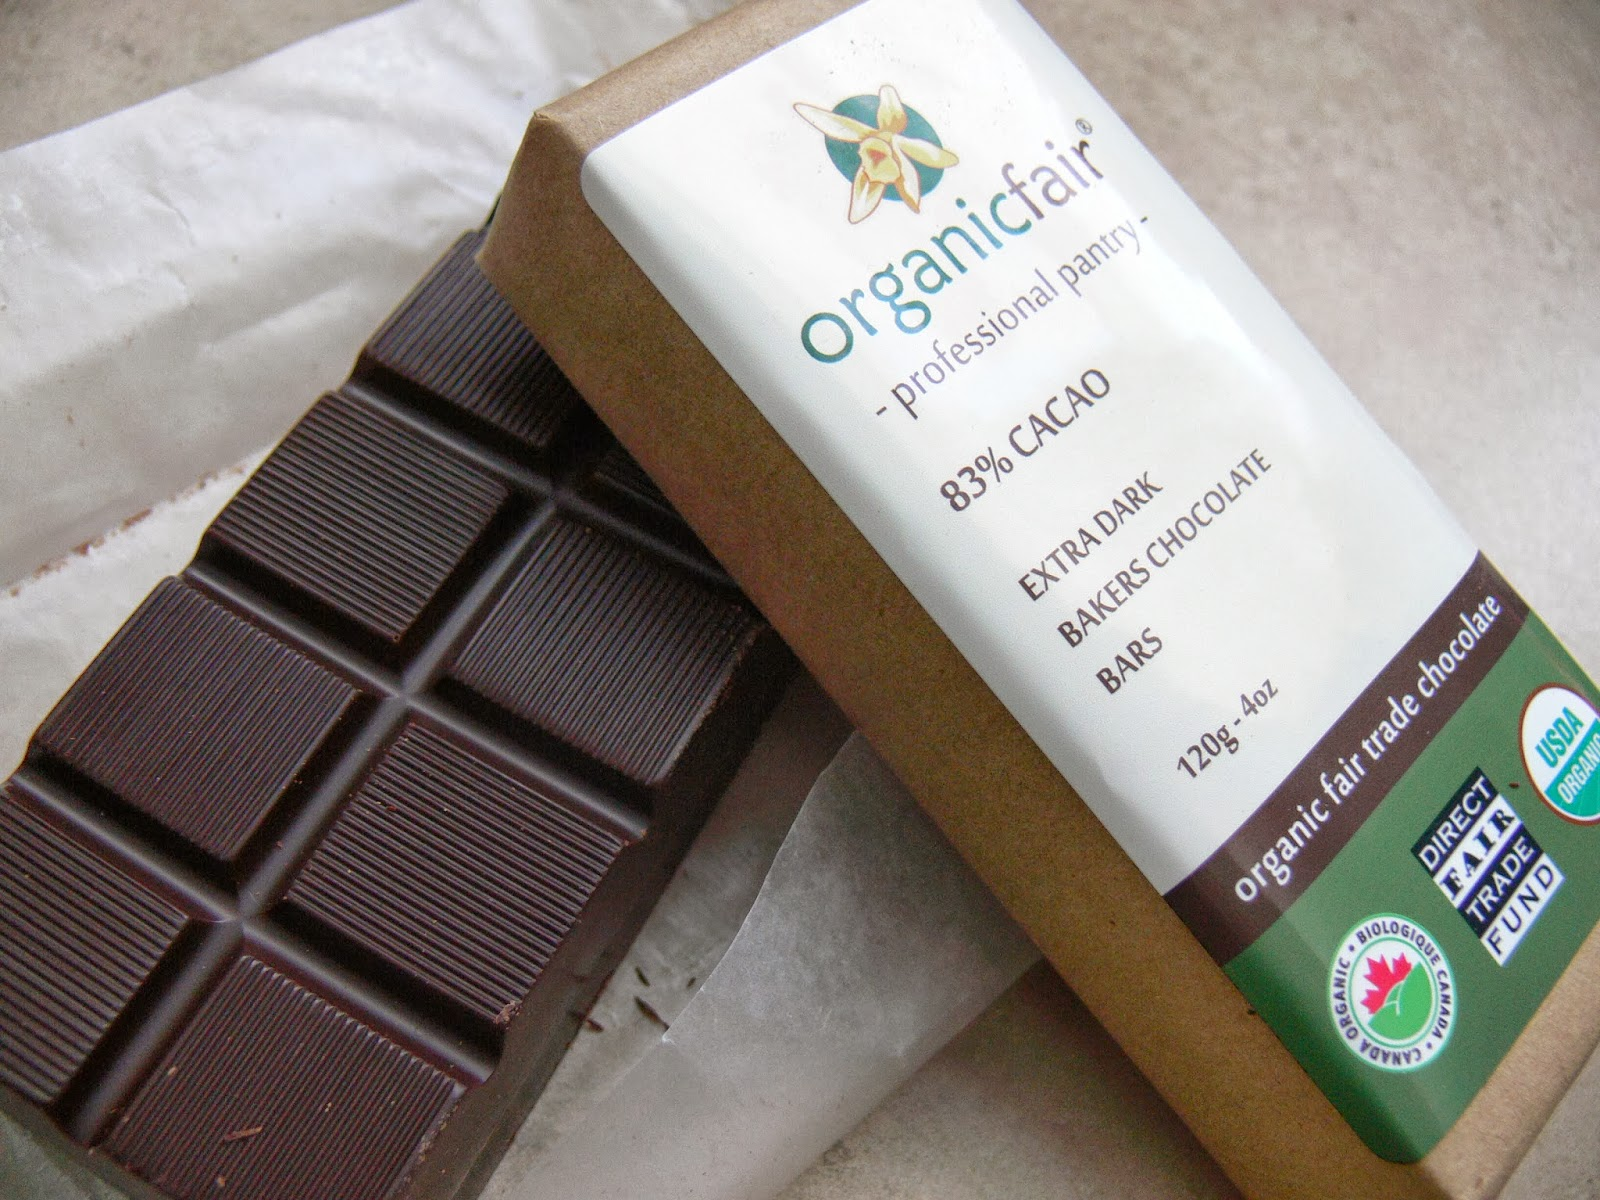 The Ultimate Chocolate Blog: Canada's Growing Bean-to-Bar, Craft ...